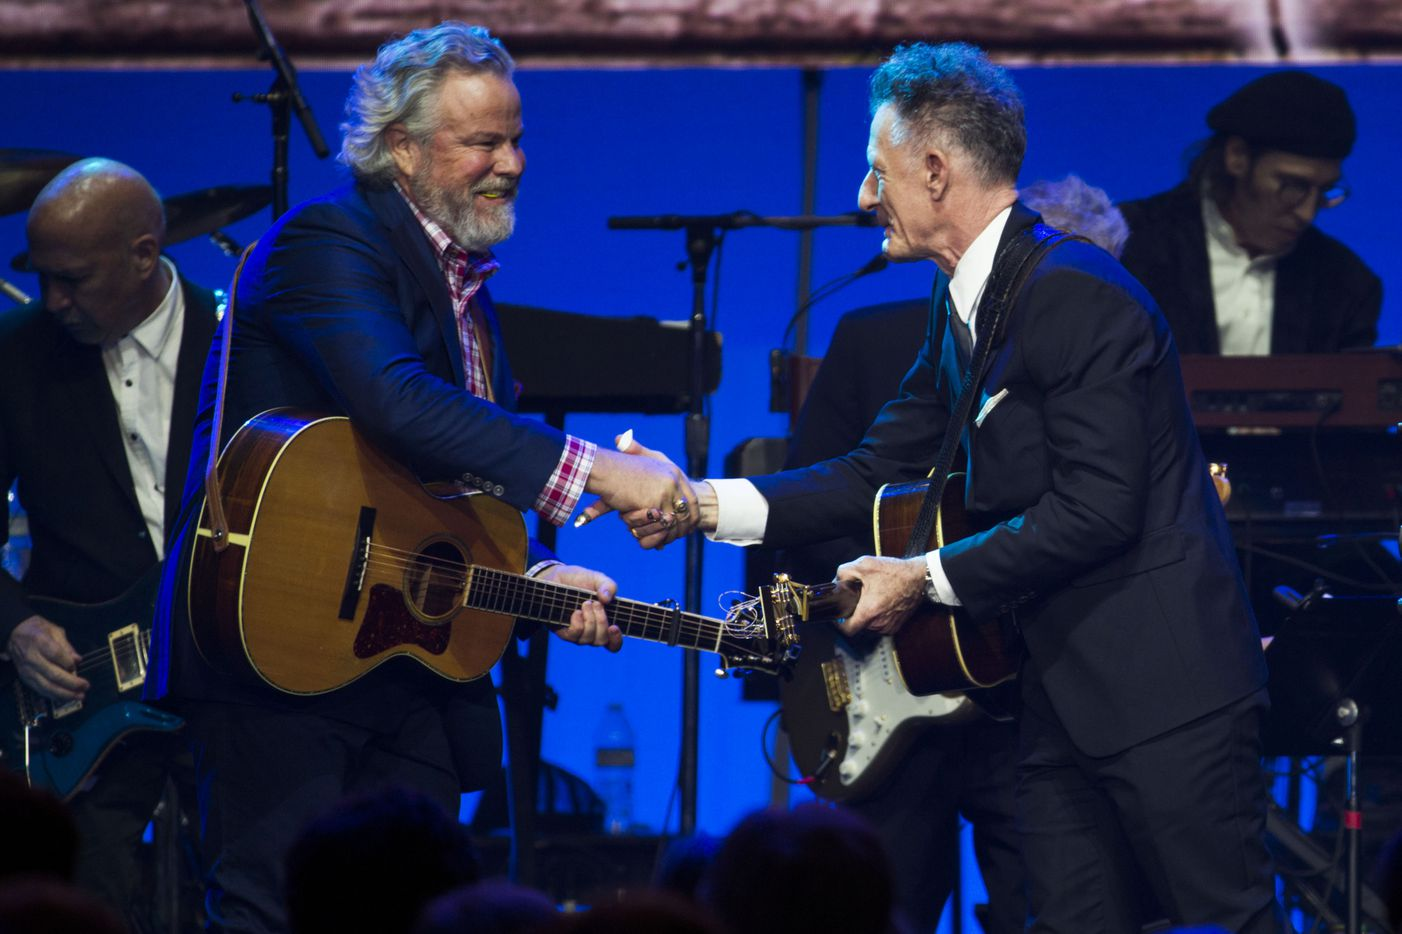 Robert Earl Keen and Lyle Lovett perform together.